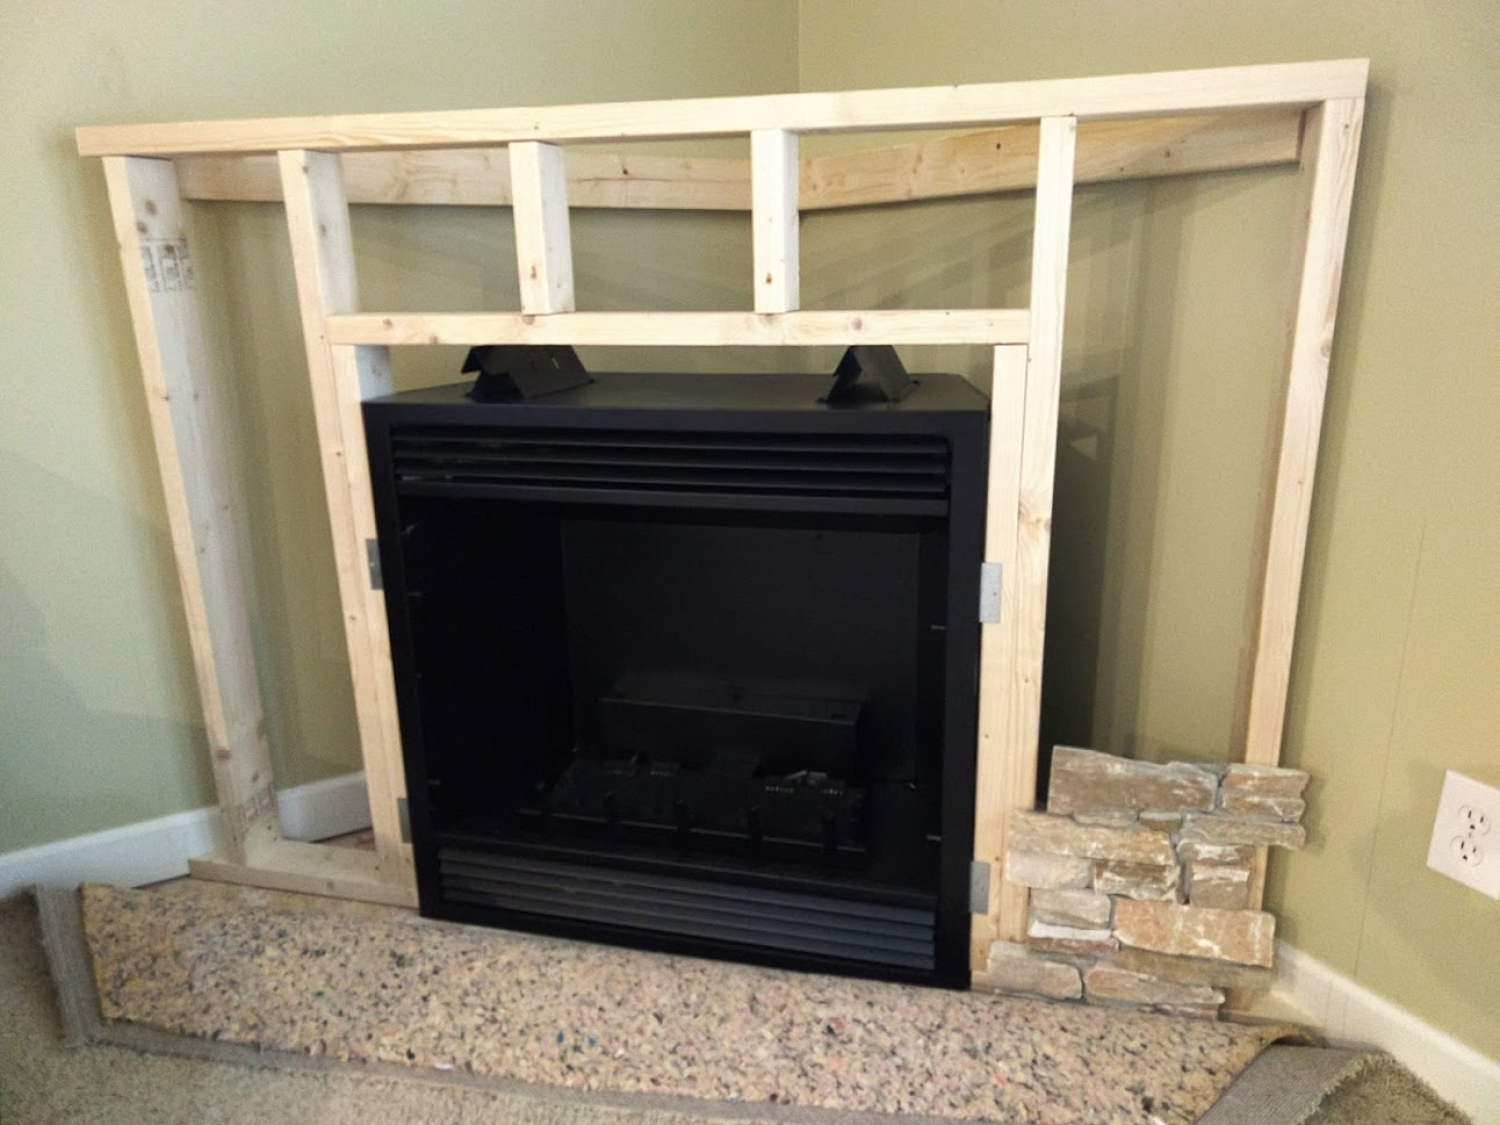 Ventless Gas Fireplace Experts 300 Vent Free Fireplaces